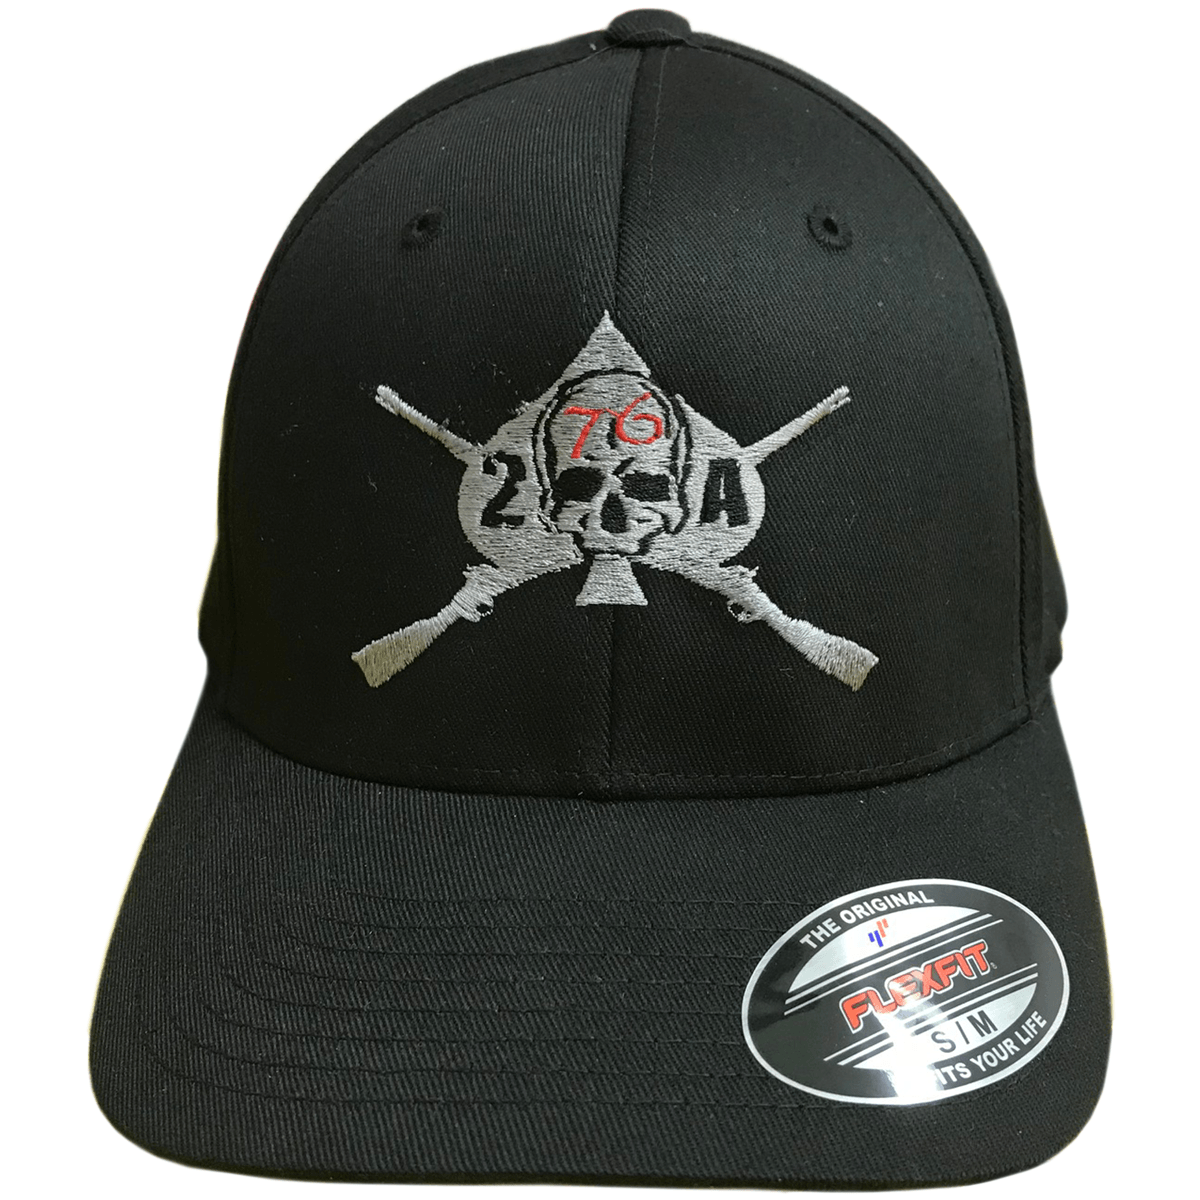 Limited Edition 2nd Amendment Cap